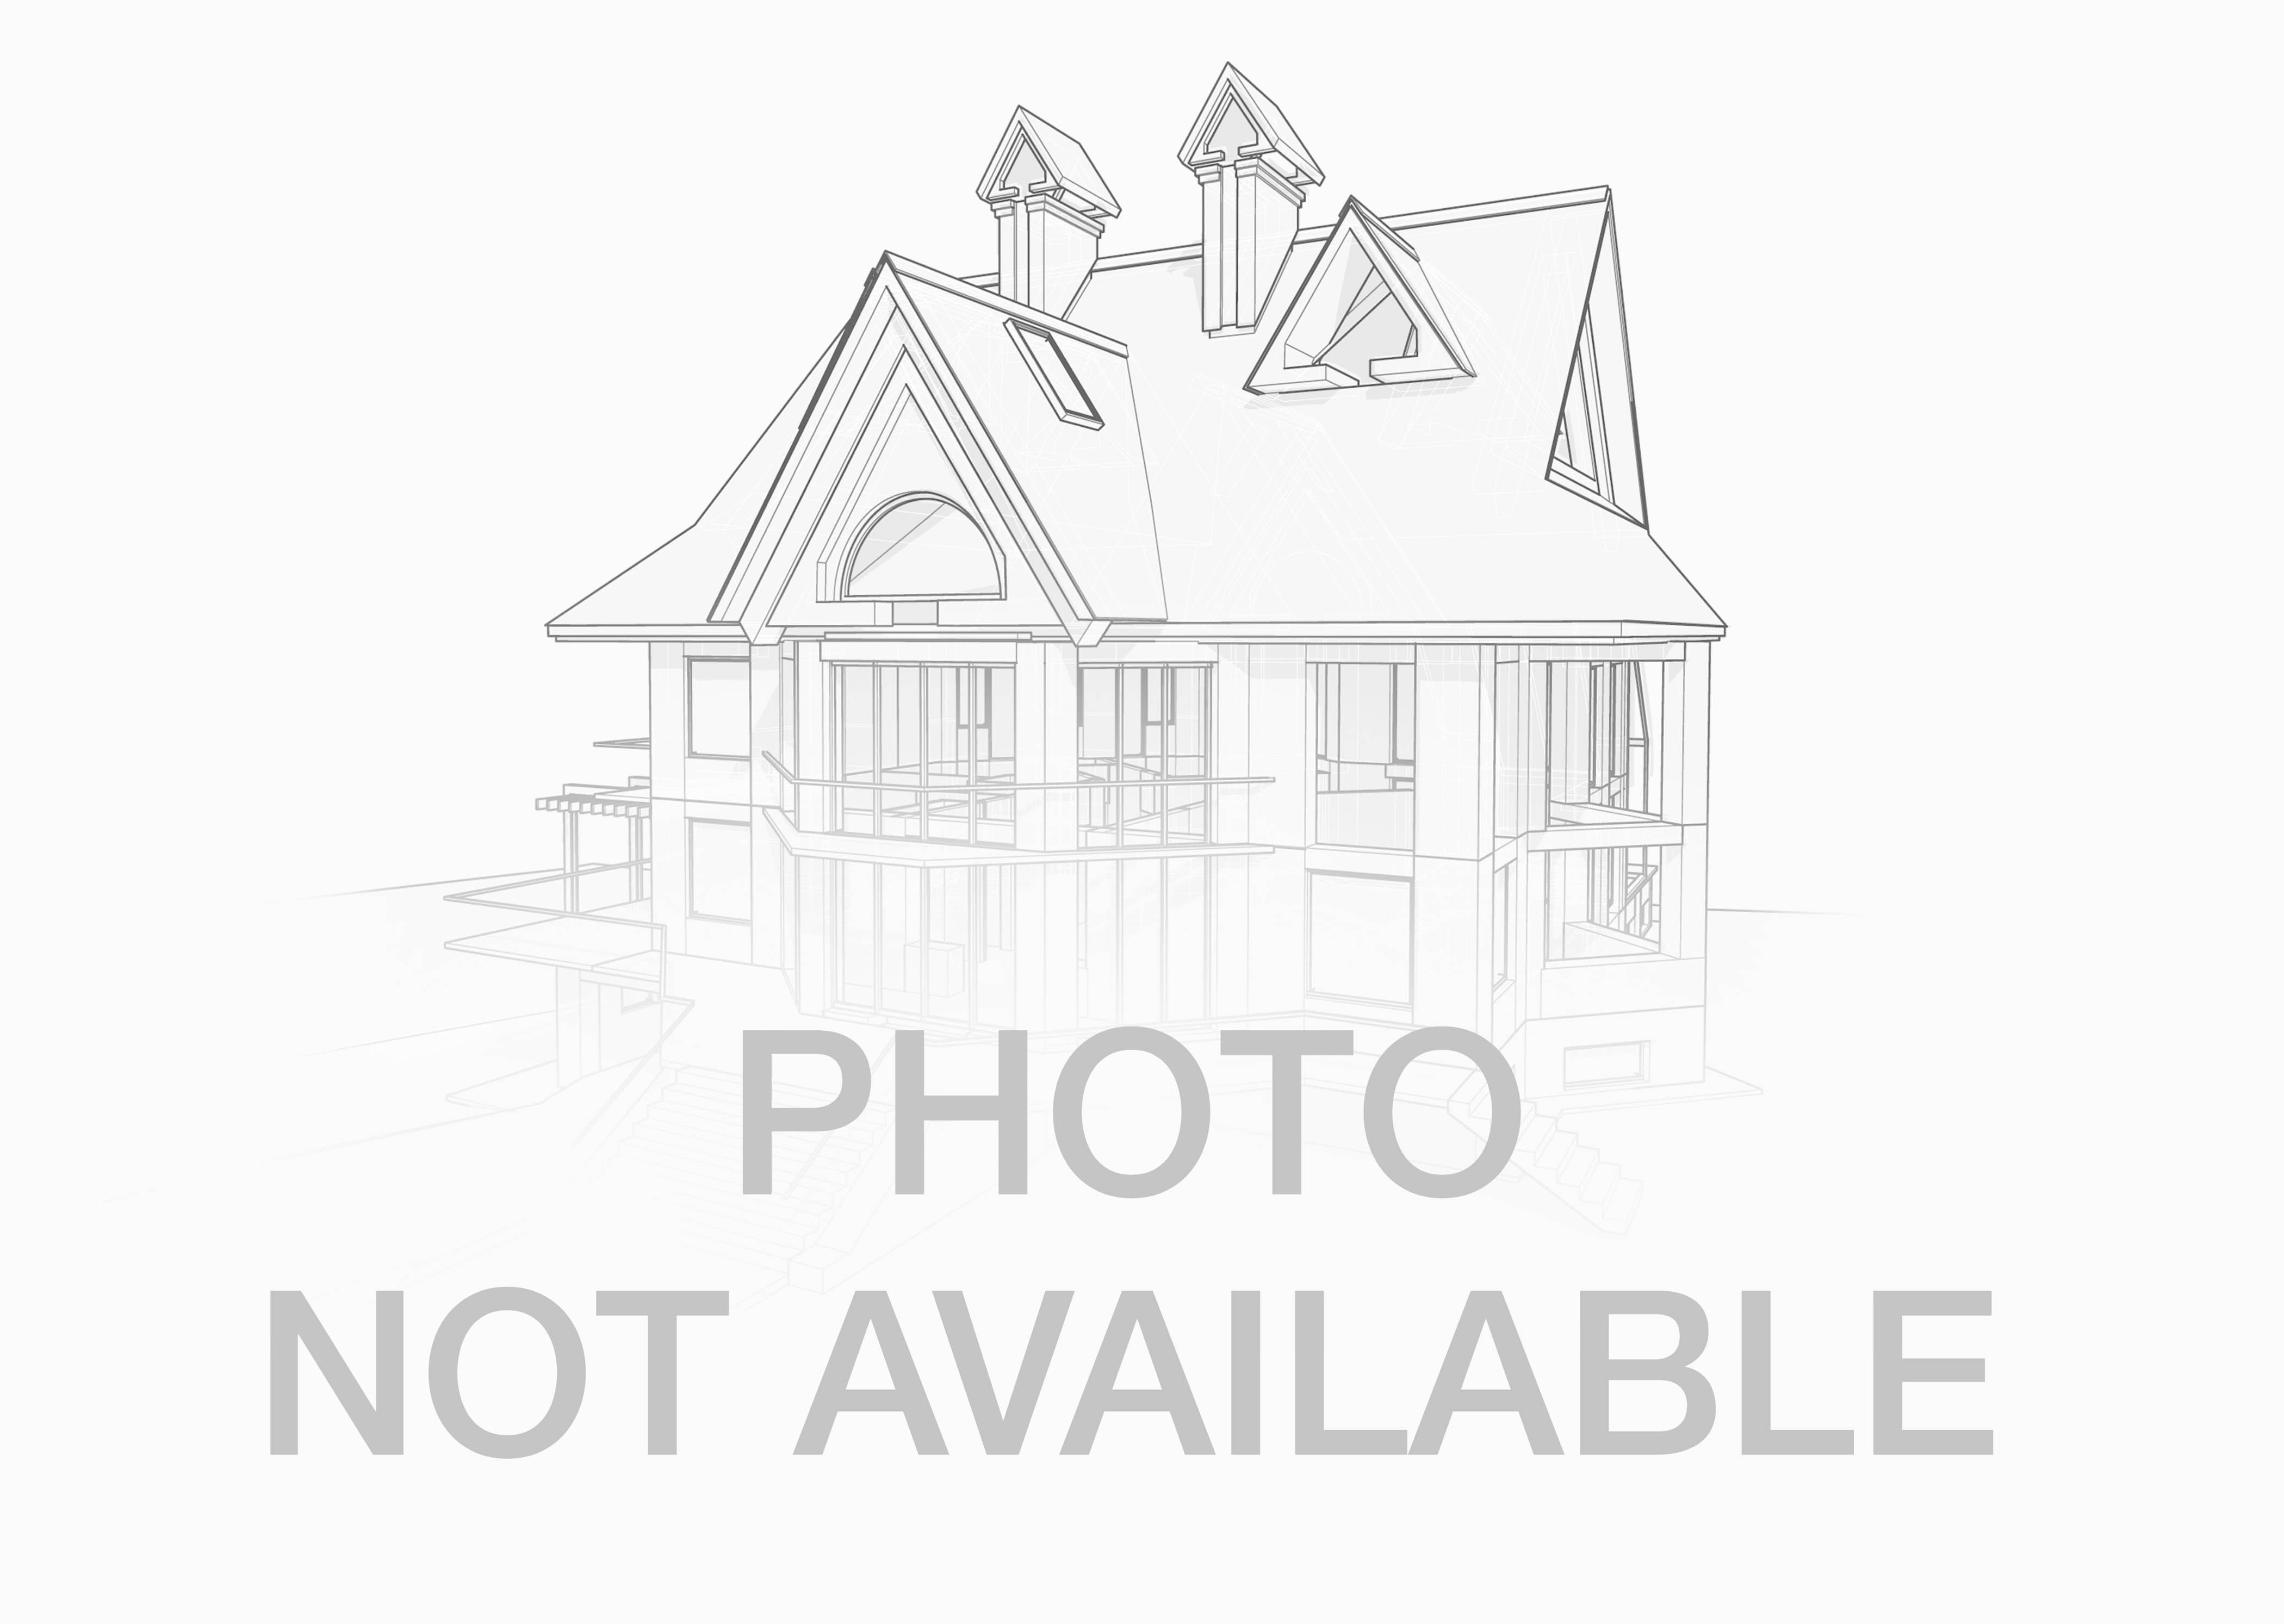 1018 Lakeview Rd, Huron, Oh 44839 - MLS ID 4013862 on